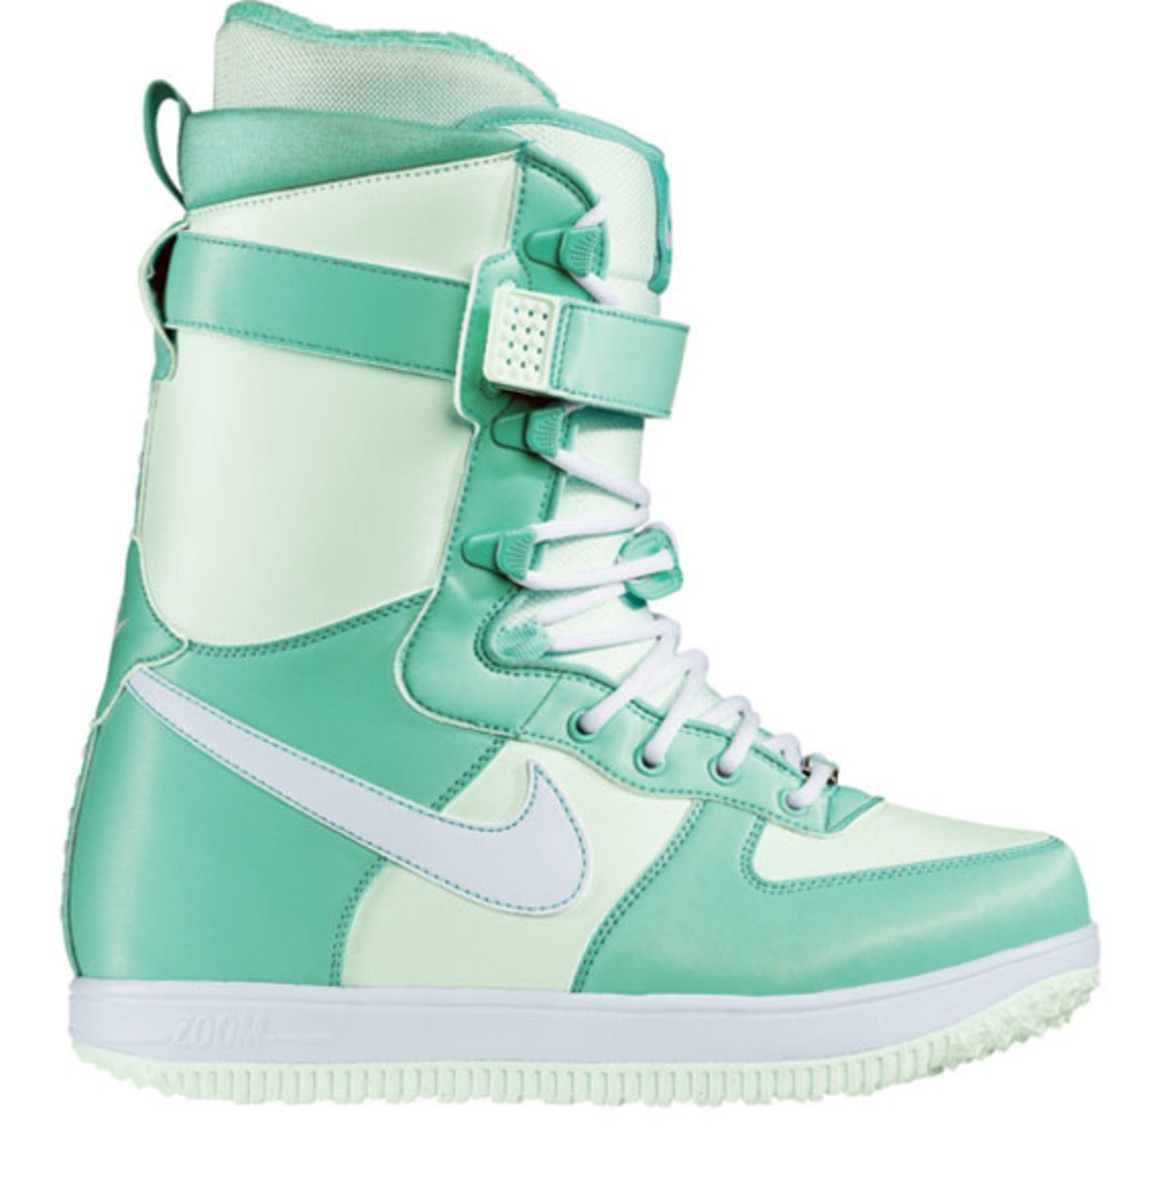 nike-snowboarding-boots-11